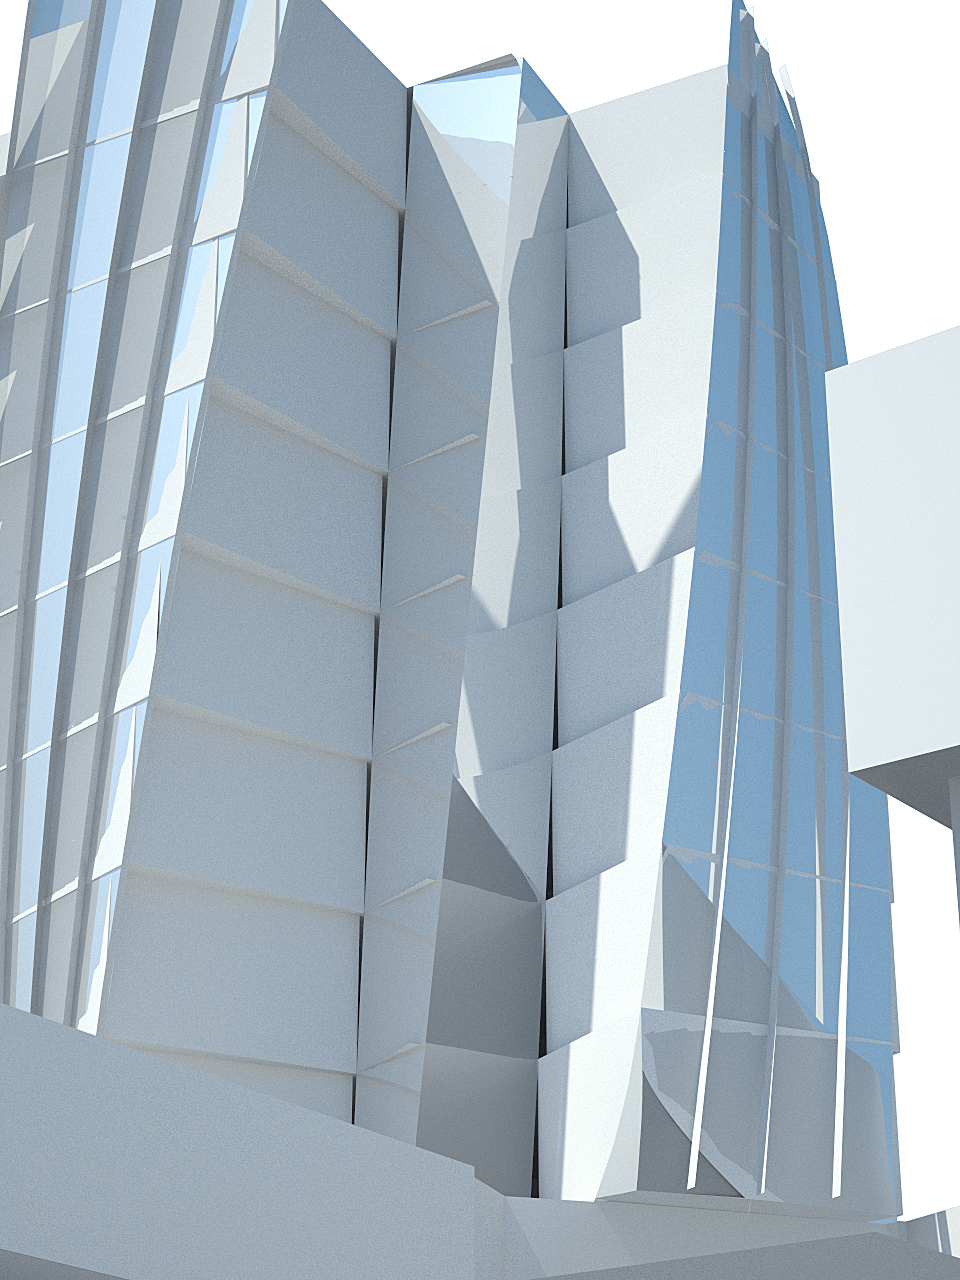 Conceptual Rendering of the Tower